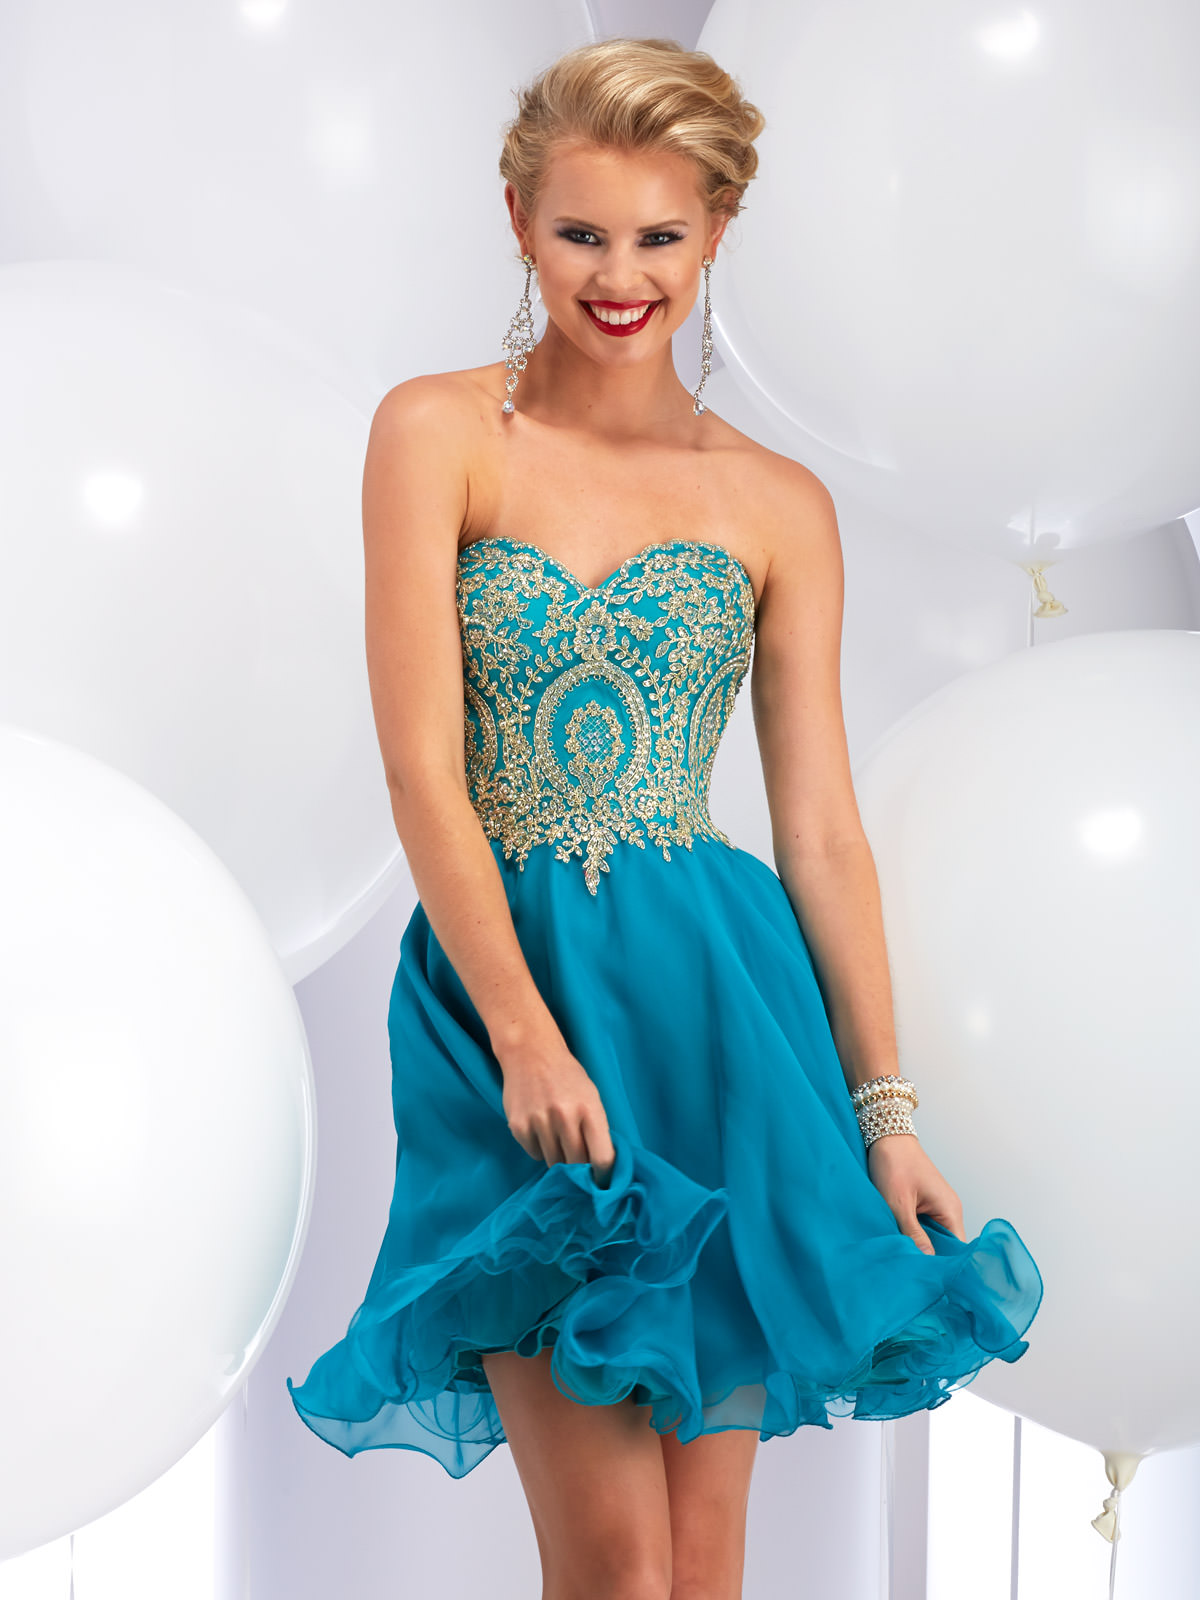 Clarisse 2841 Prom Dress | Promgirl.net